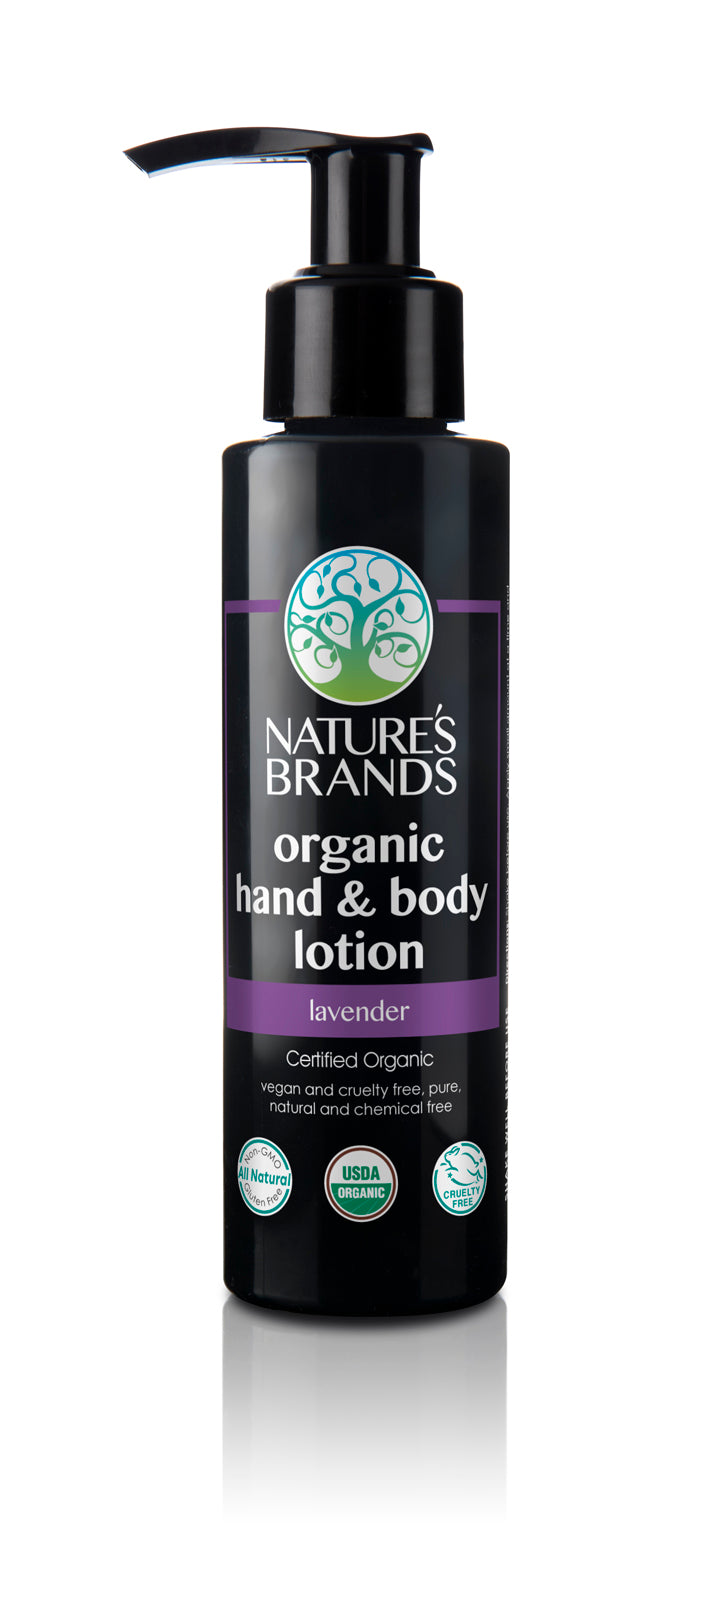 Herbal Choice Mari Organic Hand And Body Lotion, Lavender - Herbal Choice Mari Organic Hand And Body Lotion, Lavender - Herbal Choice Mari Organic Hand And Body Lotion, Lavender